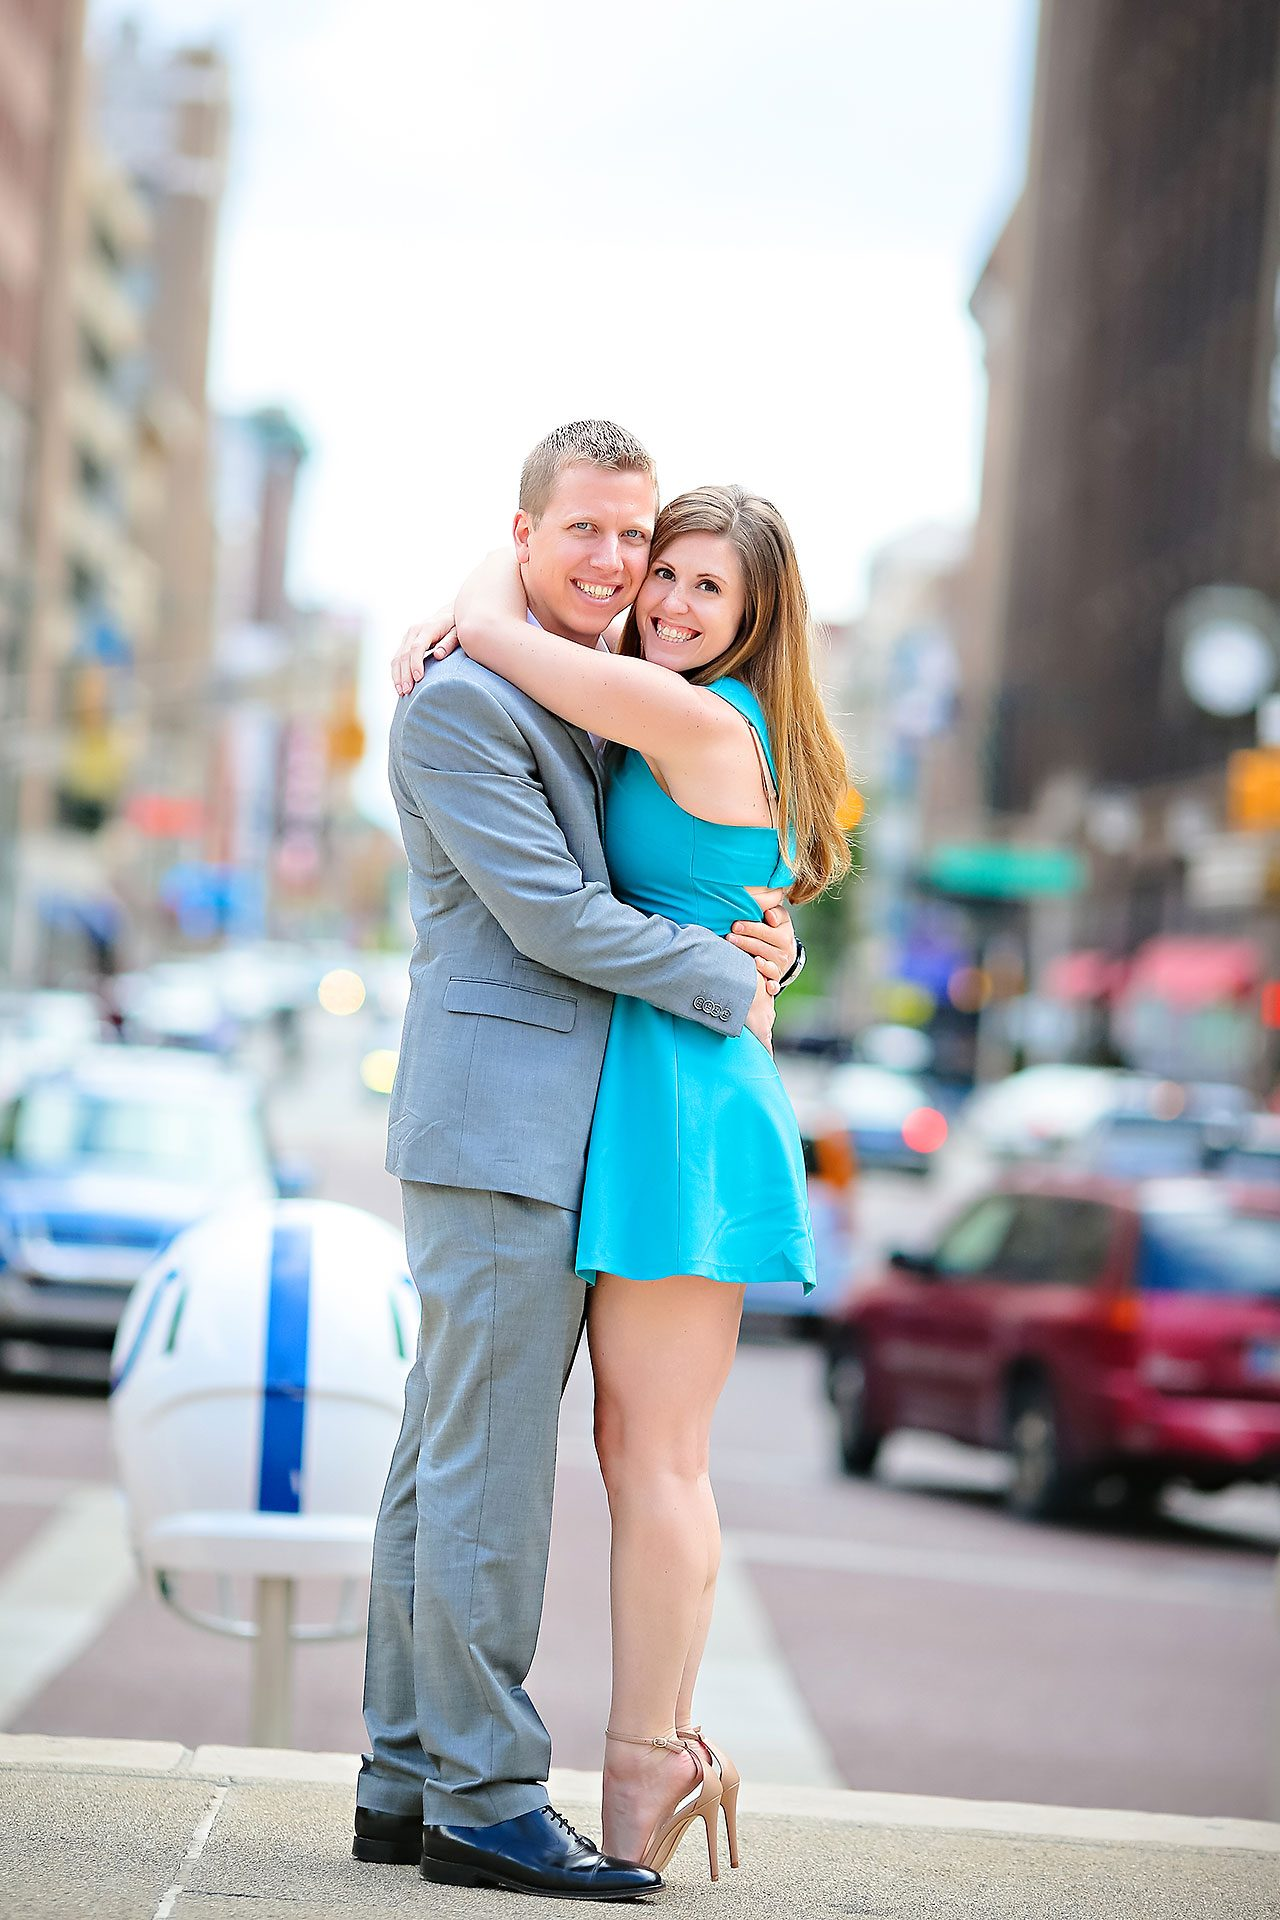 Chelsea Jeff Downtown Indy Engagement Session 111